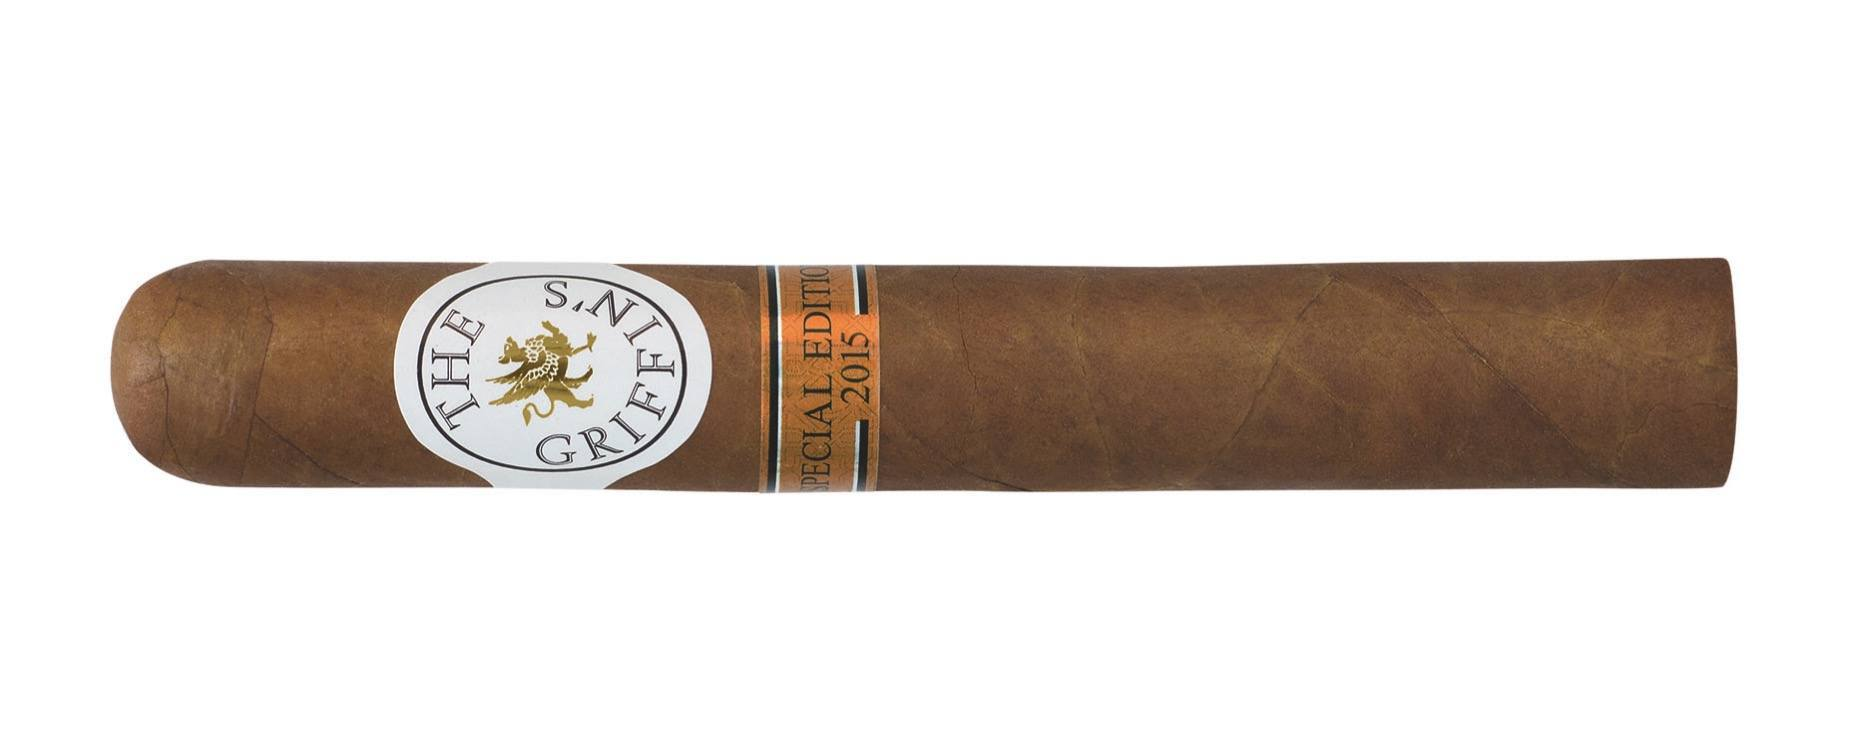 Griffins Special Edition 2015 single cigar